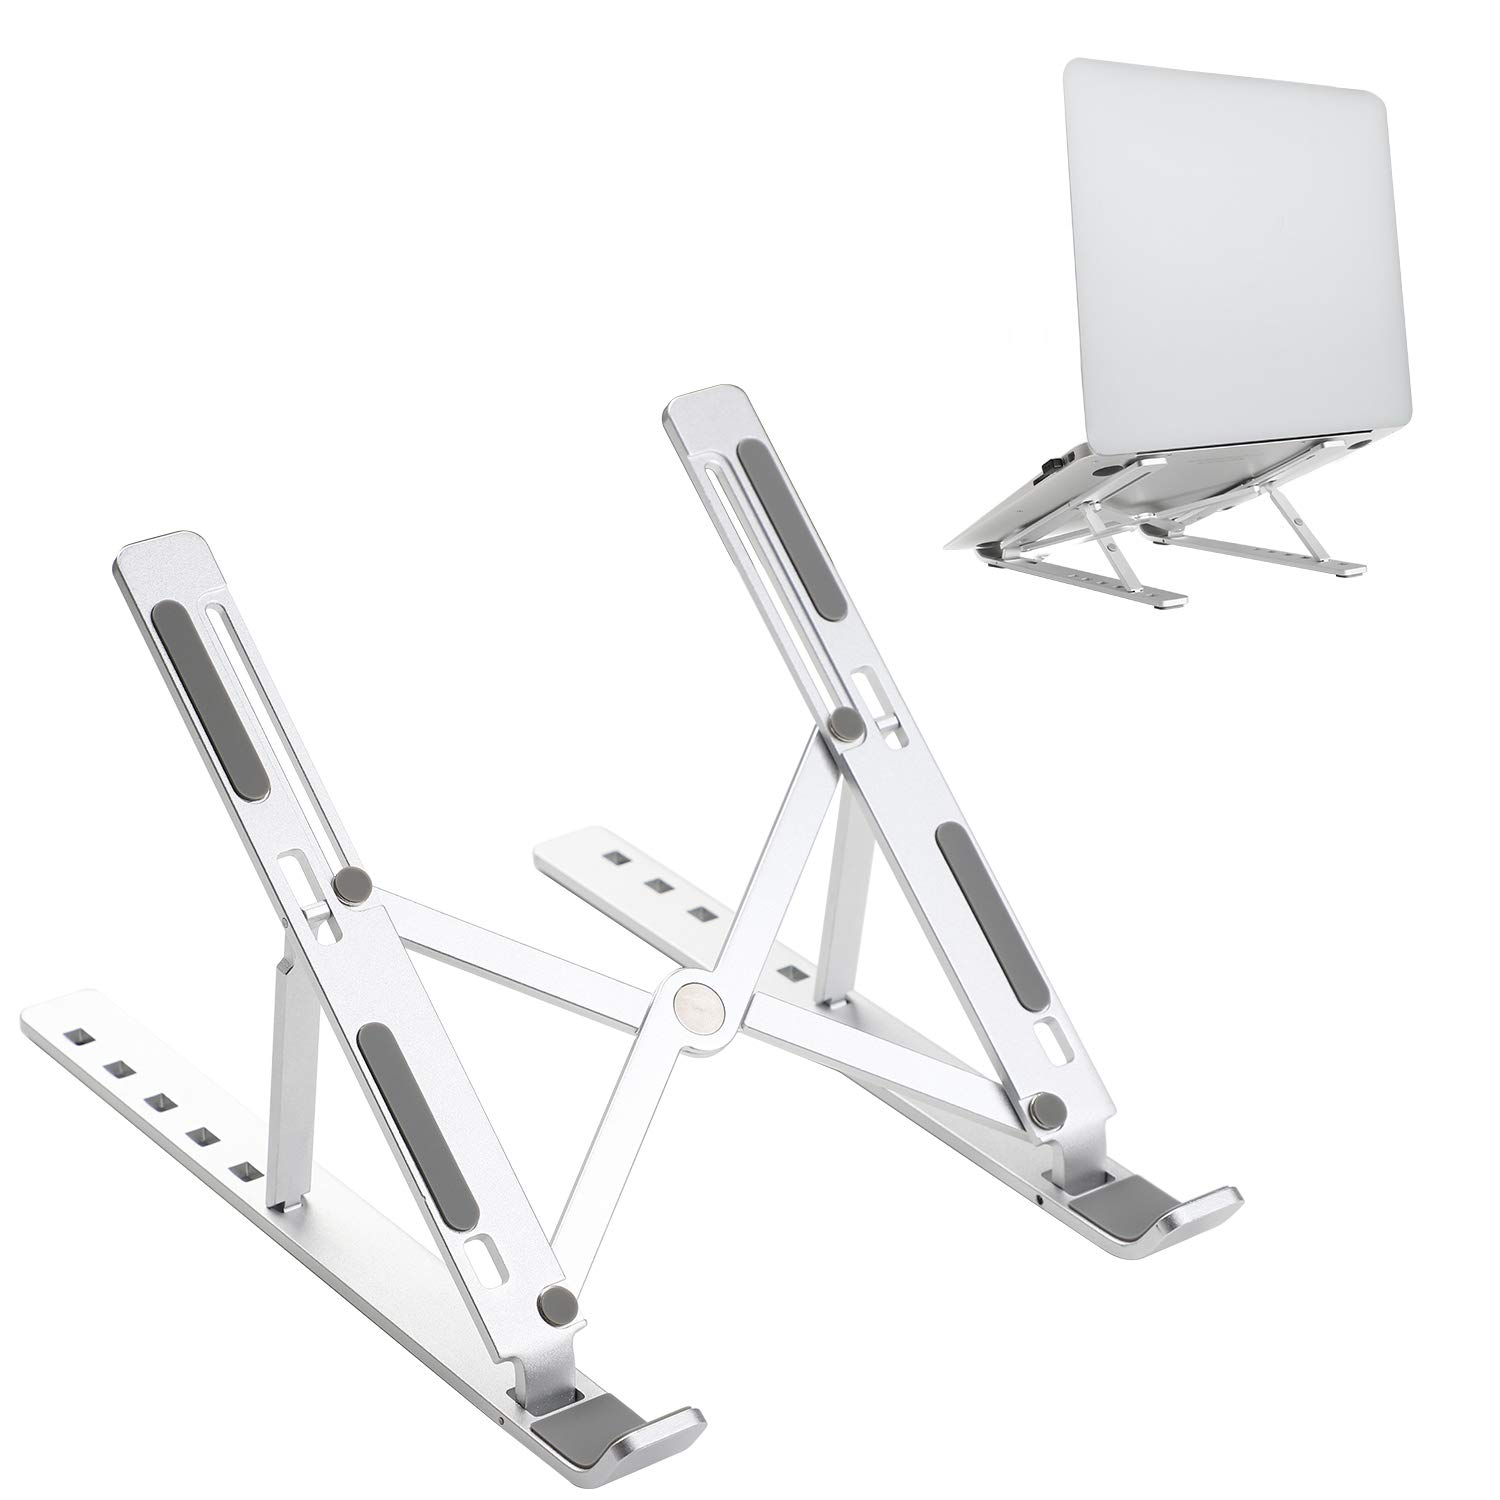 JARLINK Adjustable Laptop Tablet Stand, Foldable Aluminum Desktop Laptop Riser Compatible with All Laptops iPad Tablet (up to 15.6 inches), Silver by JARLINK